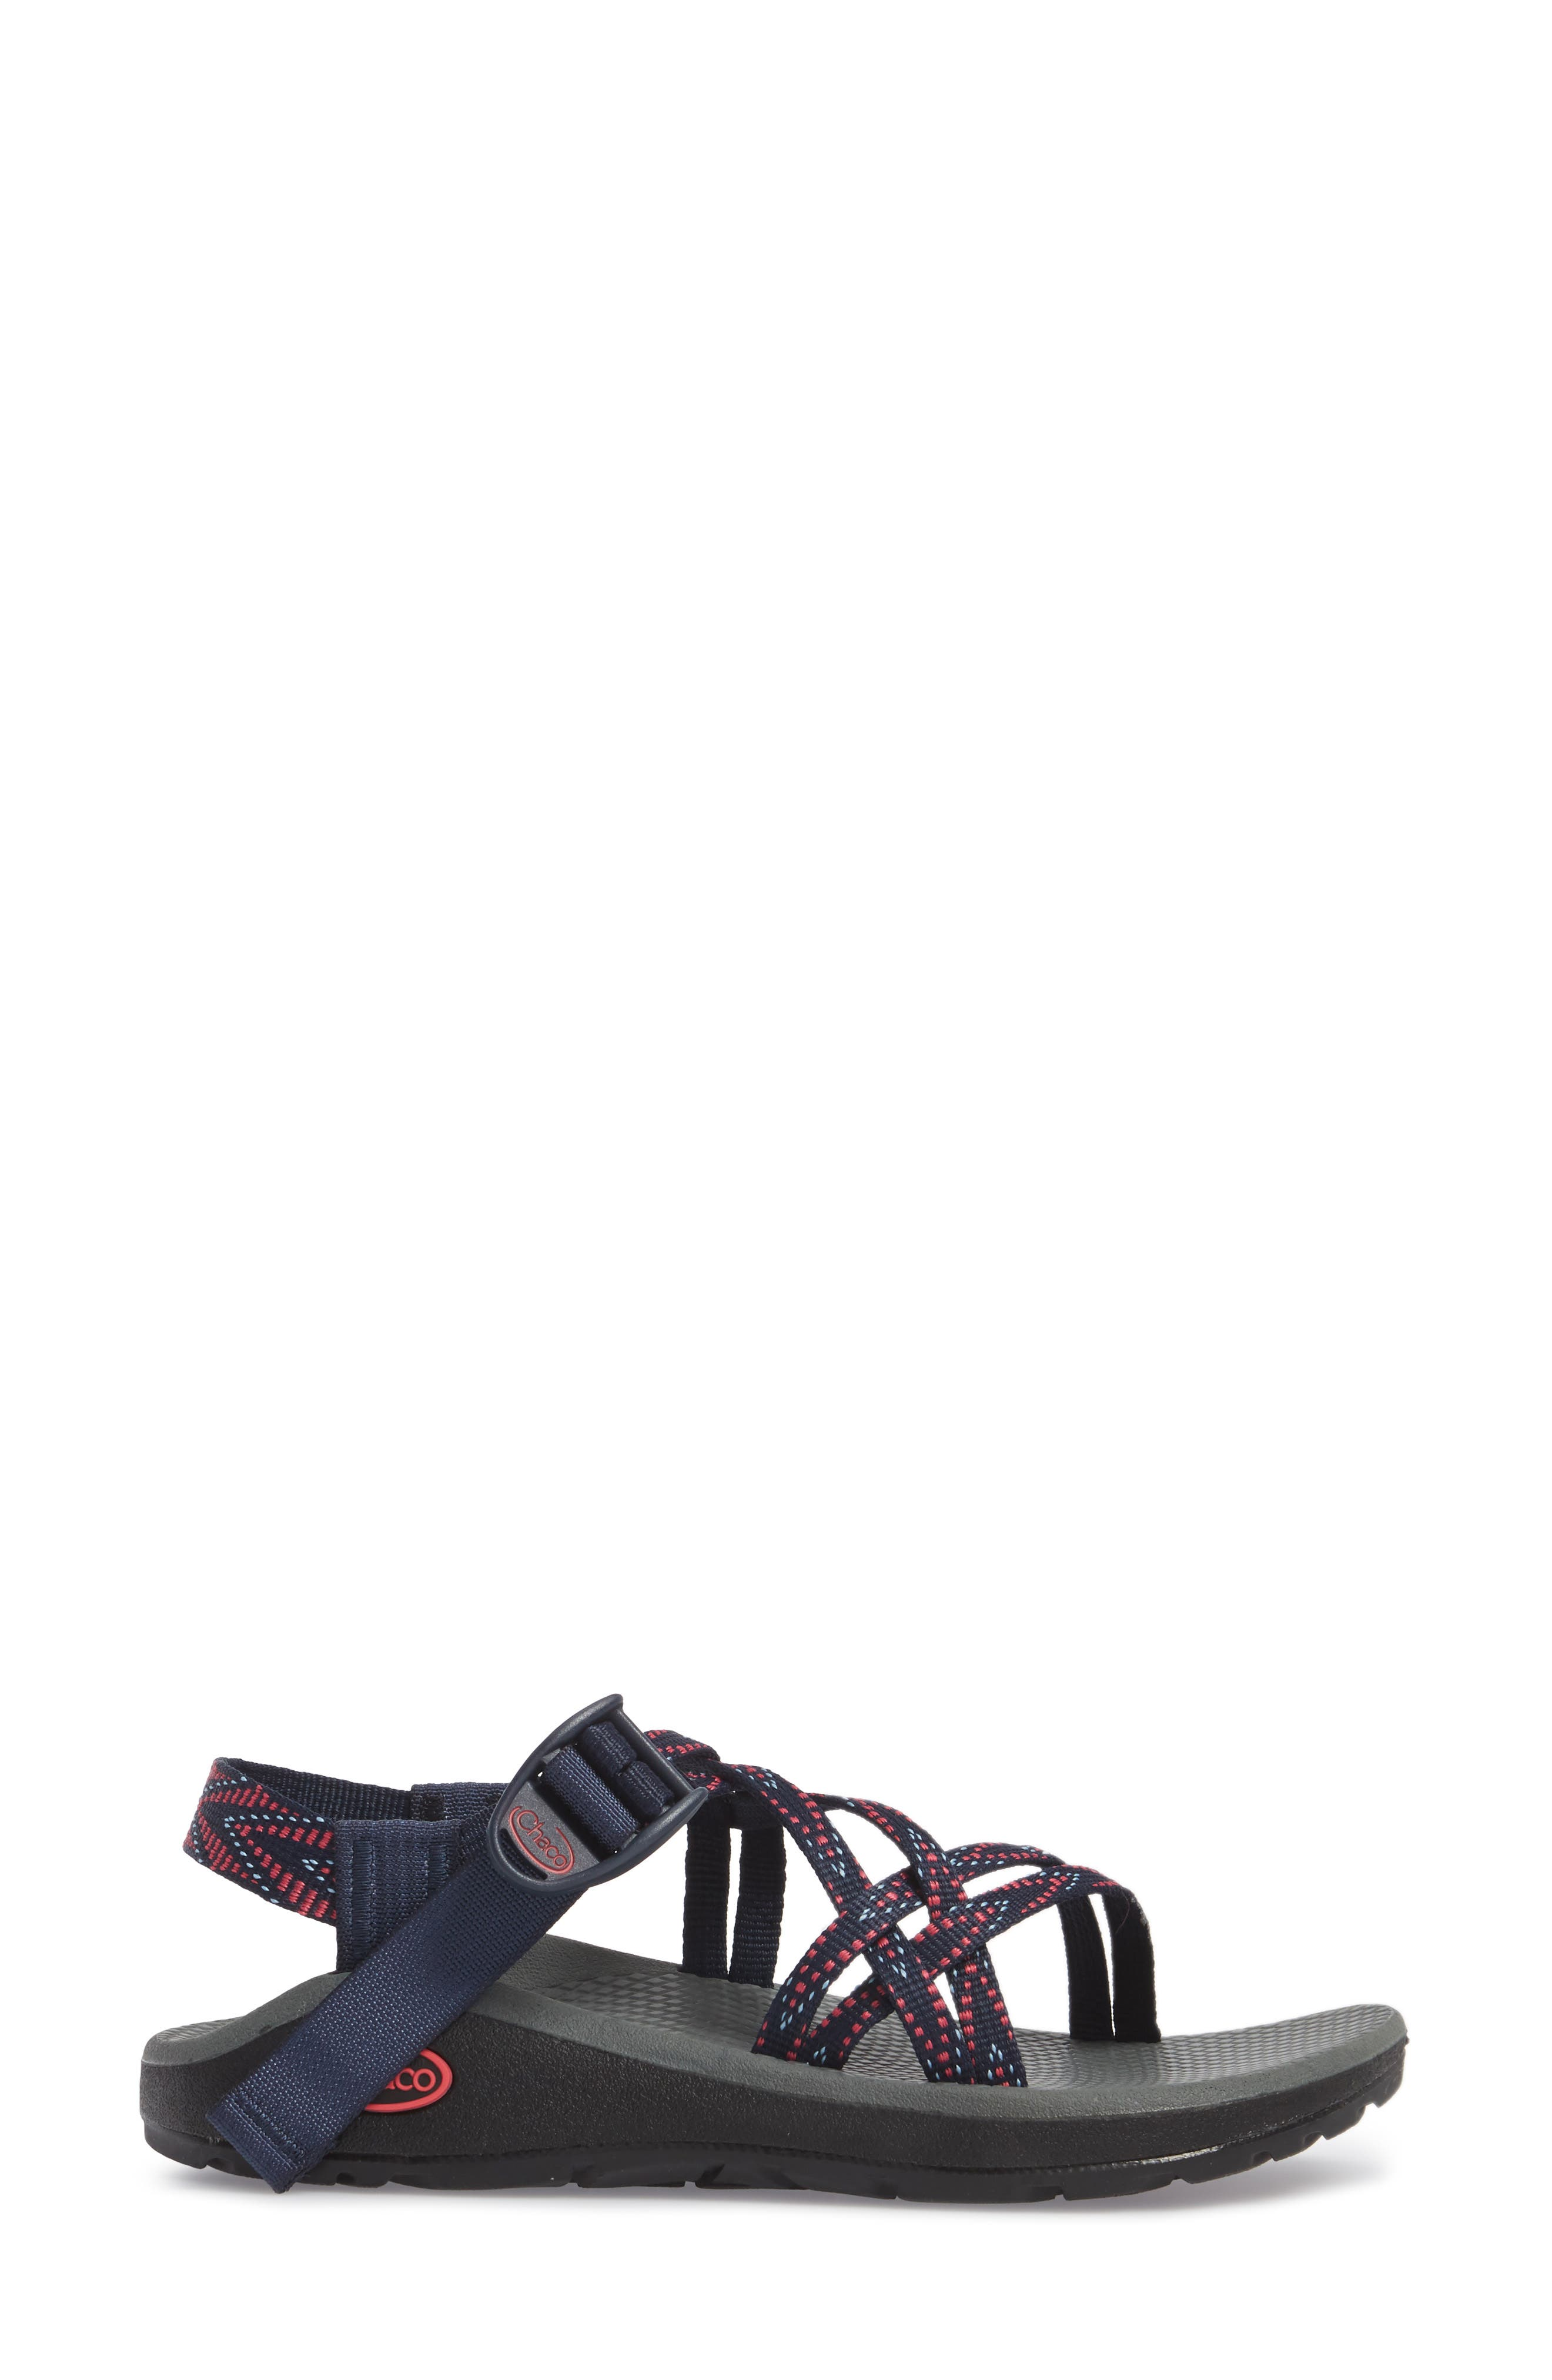 Alternate Image 3  - Chaco Z/Cloud X Sport Sandal (Women)